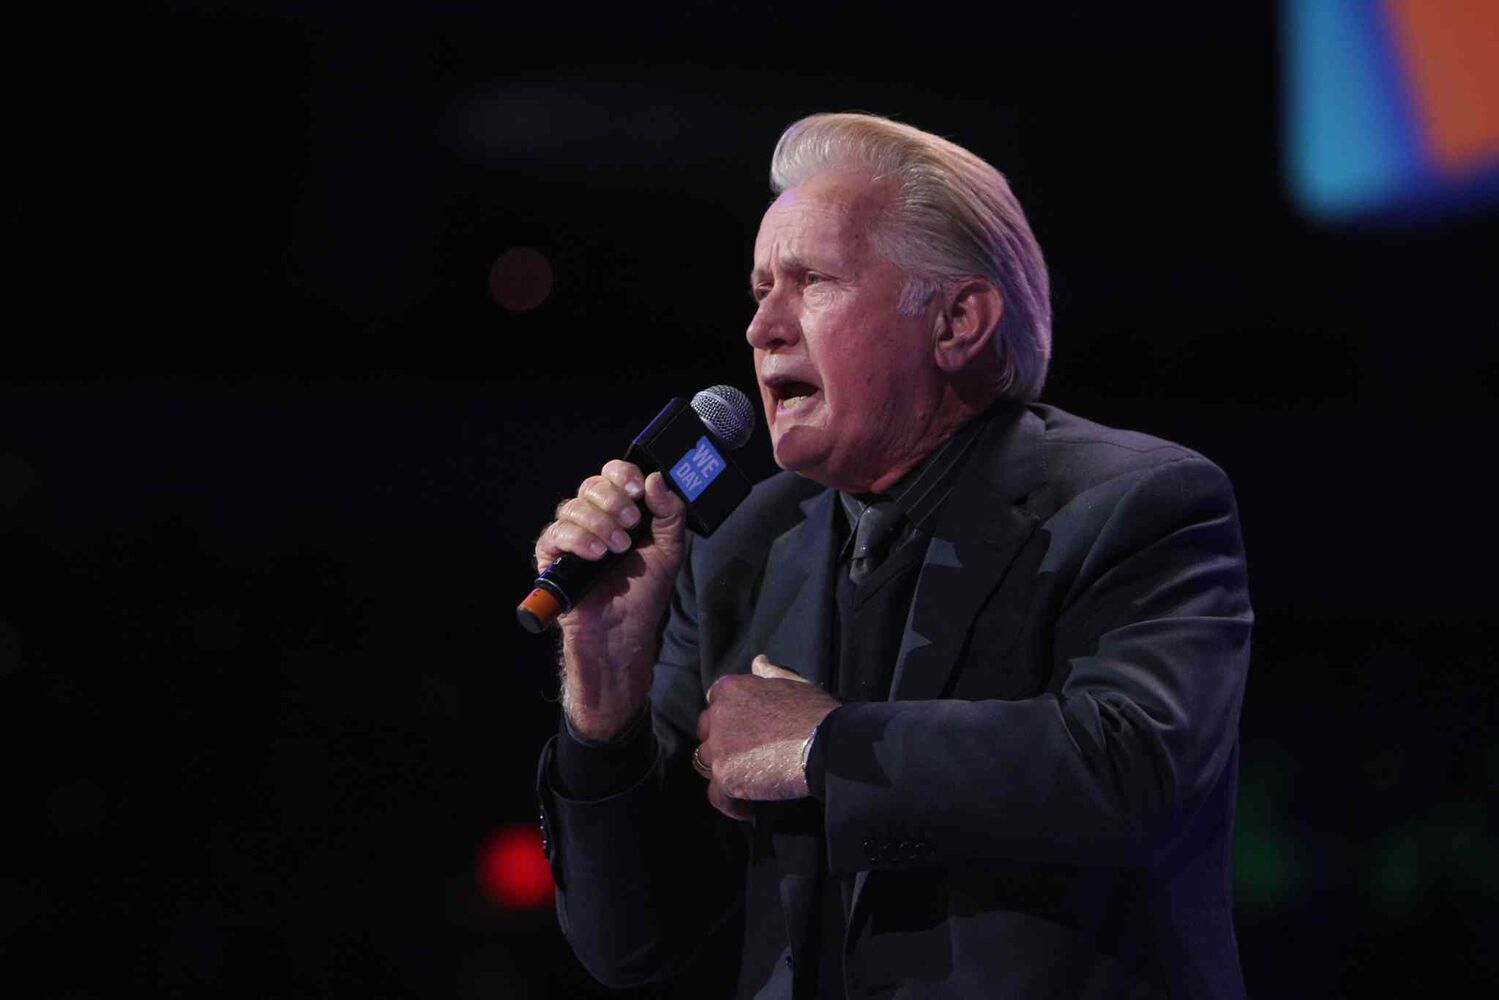 Award-winning actor and human rights advocate Martin Sheen gives an impassioned speech at We Day. (Ruth Bonneville / Winnipeg Free Press)